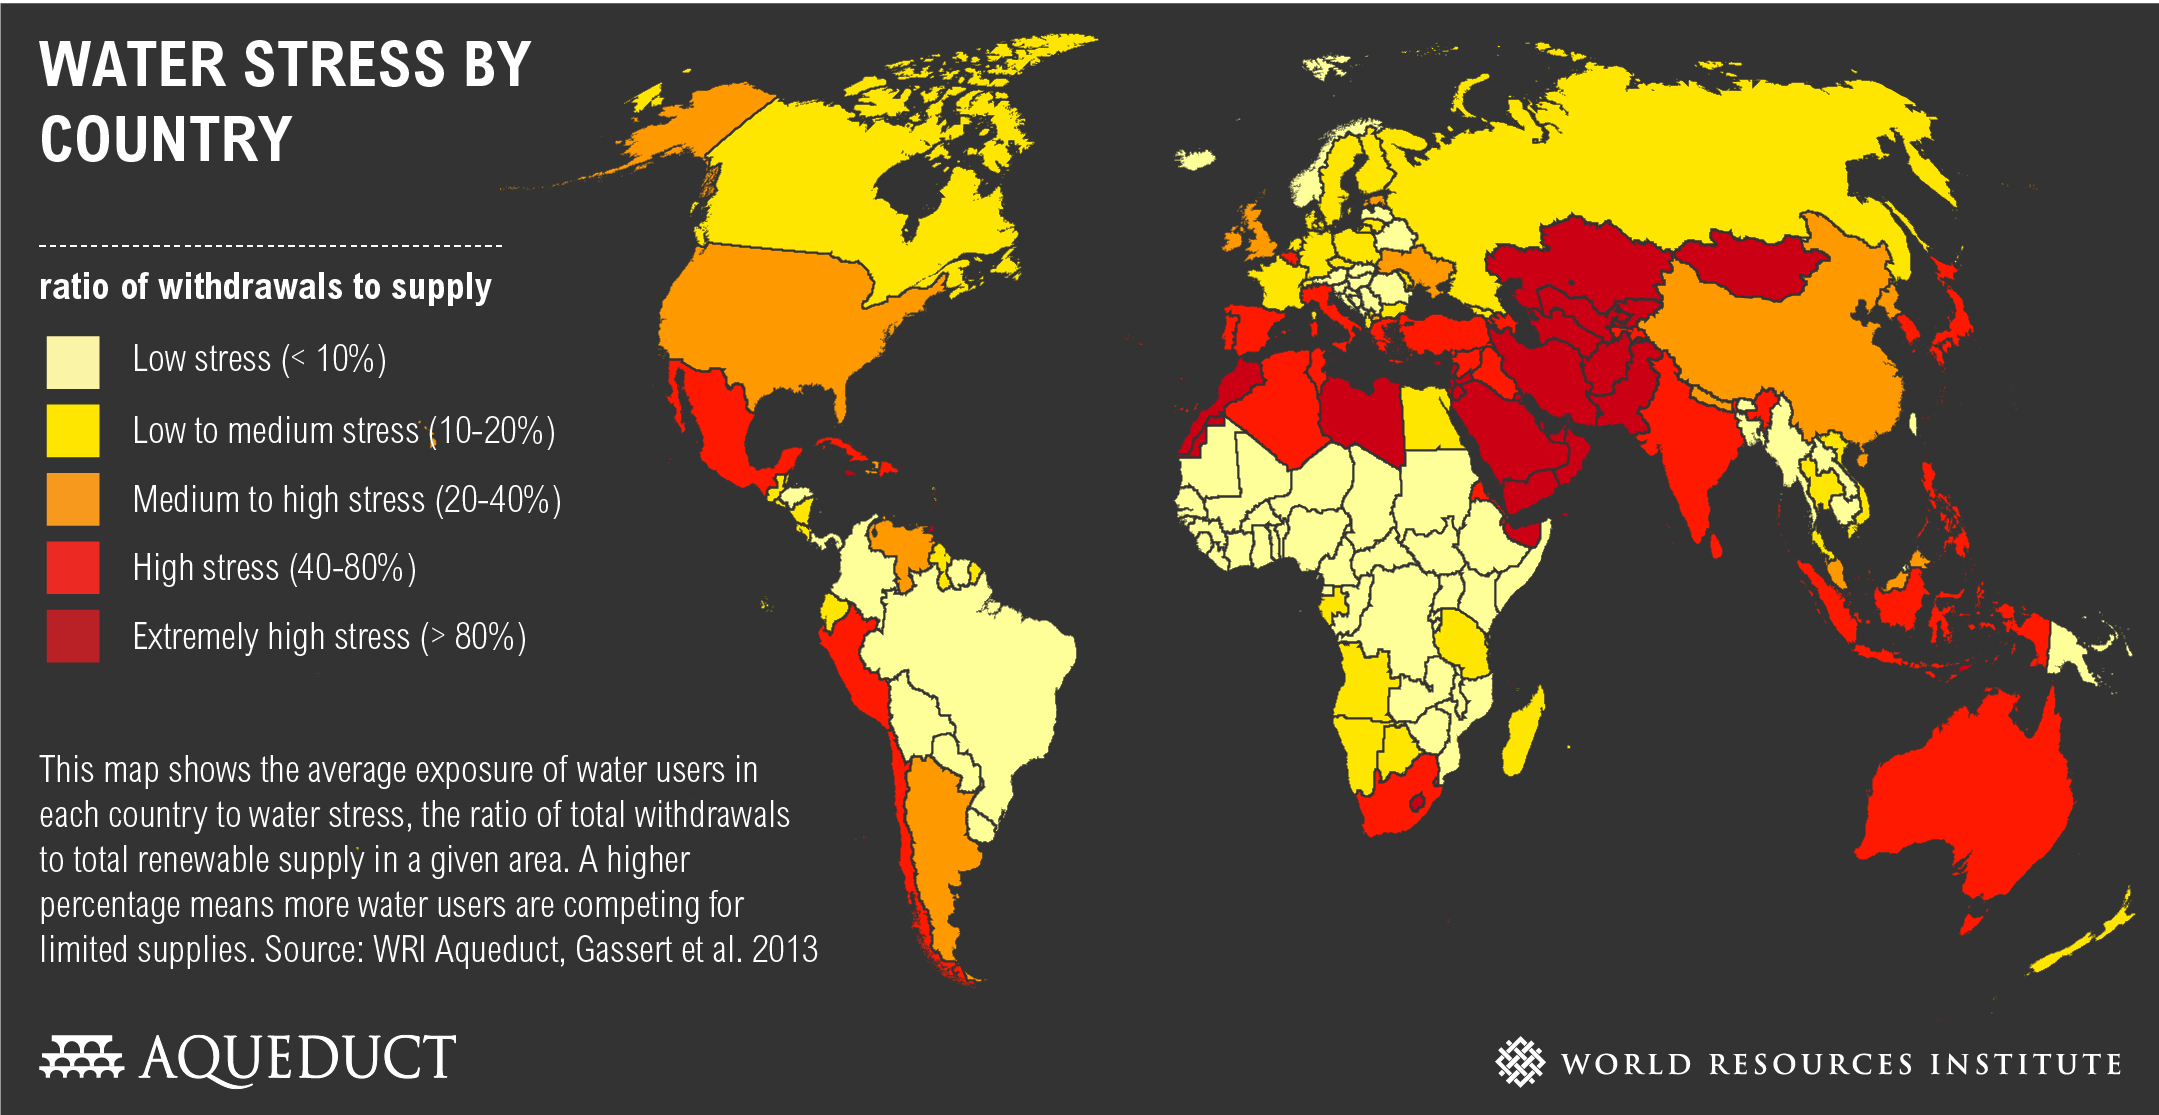 WRI water stress by country